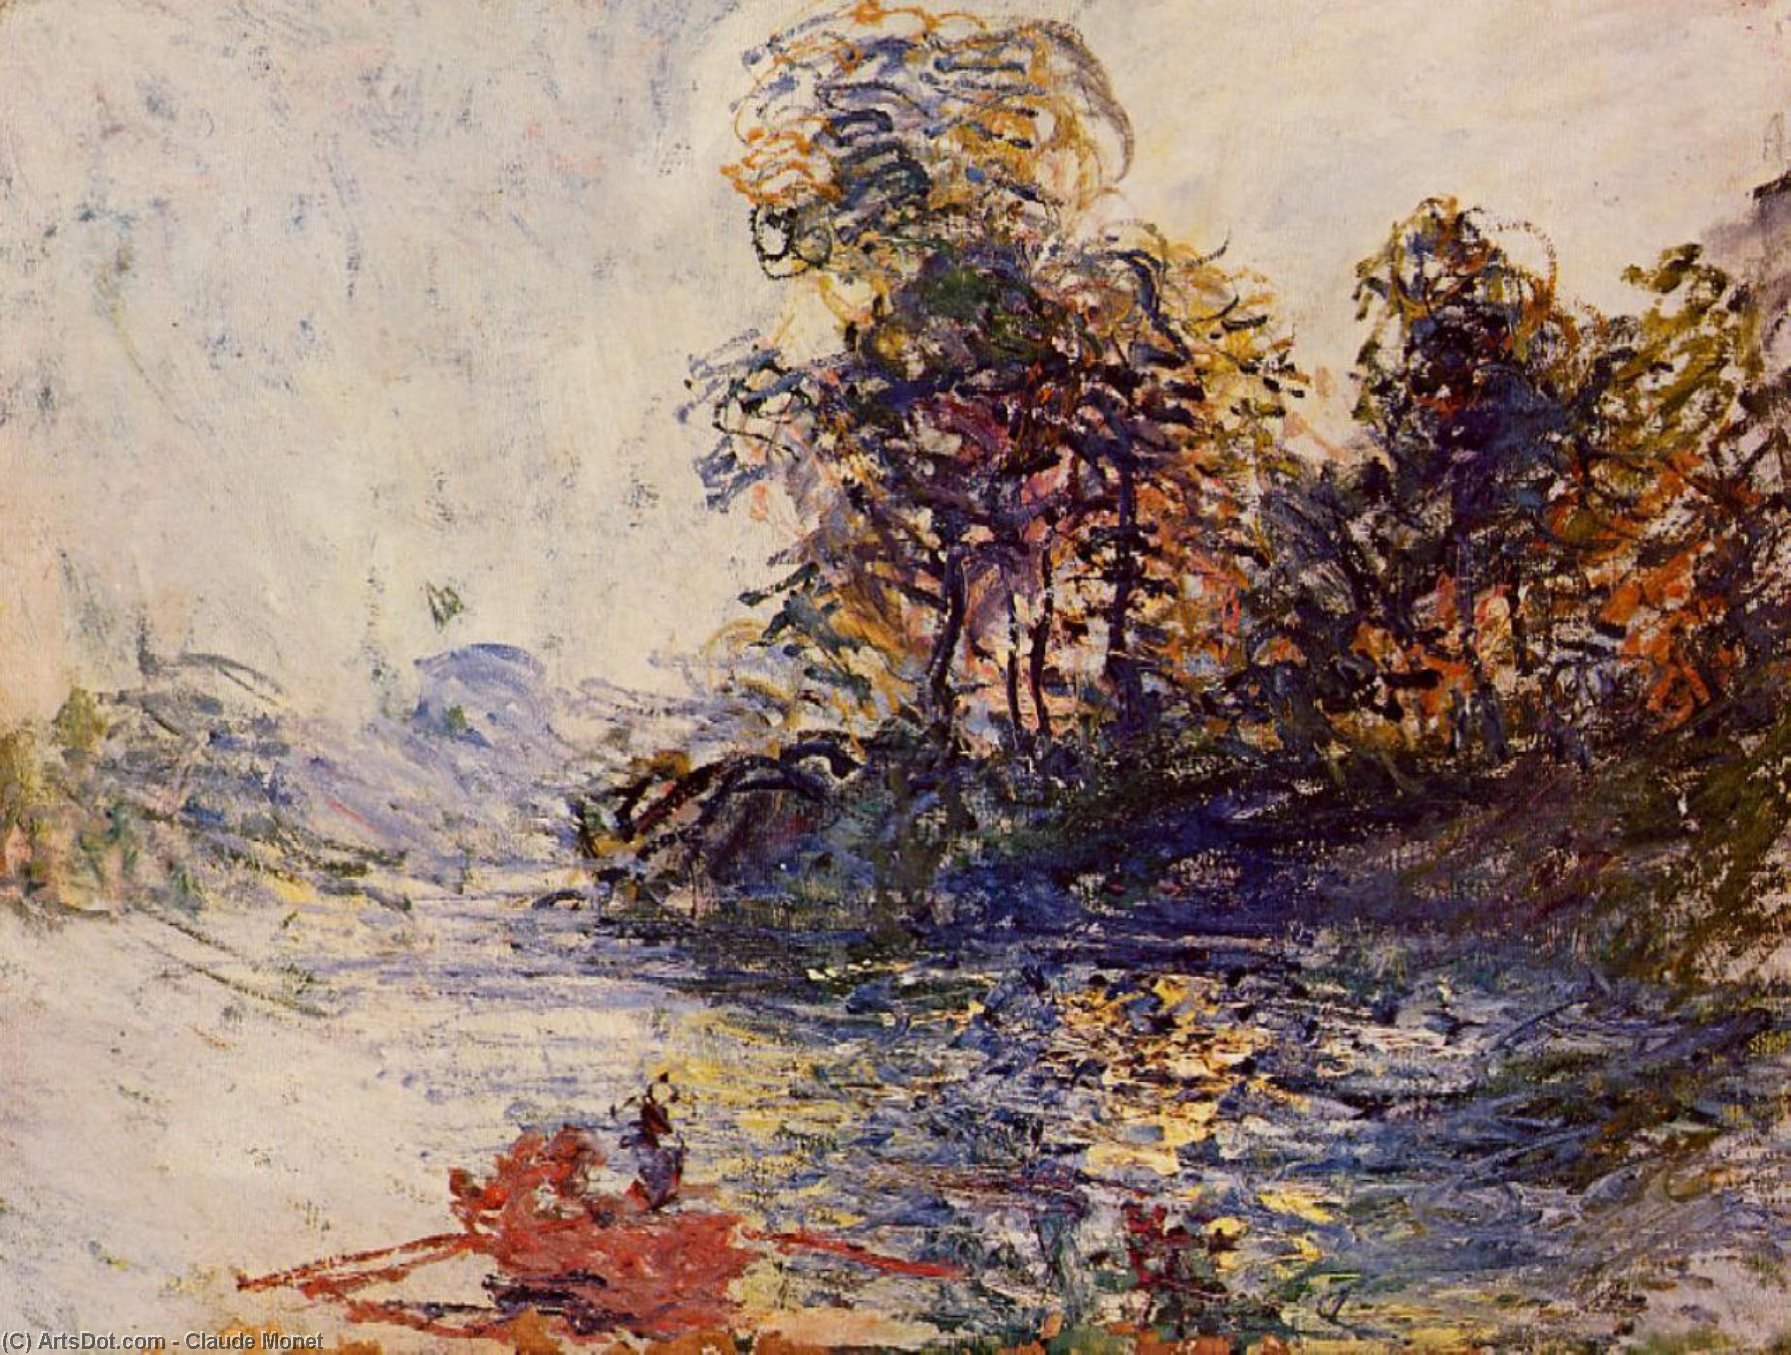 Wikioo.org - The Encyclopedia of Fine Arts - Painting, Artwork by Claude Monet - The River